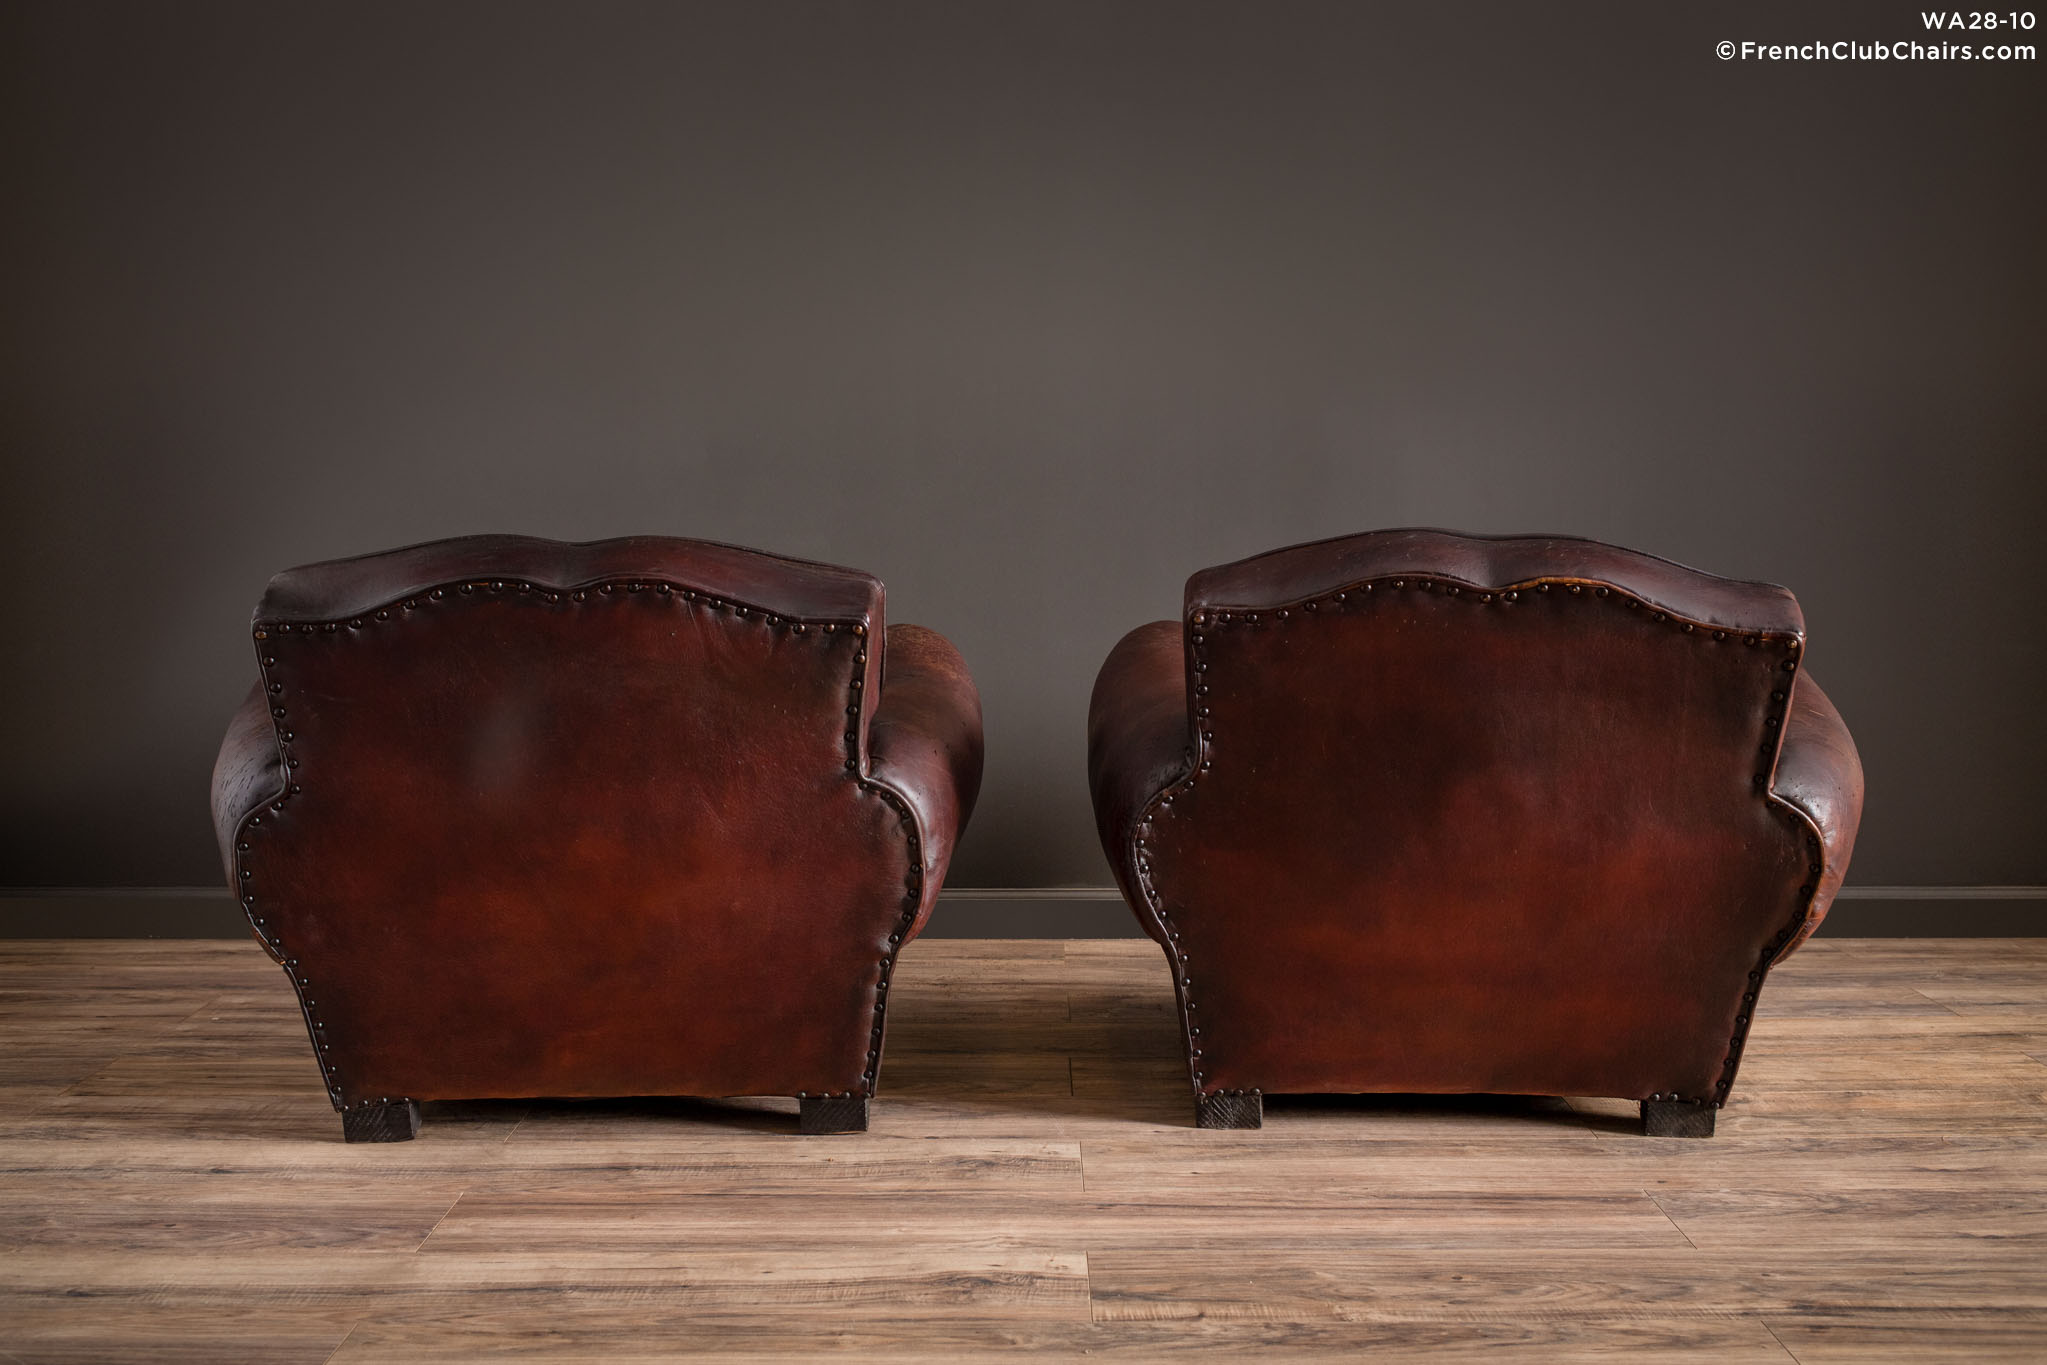 WA_28-10_La_Bastille_Mustache_Pair-restored_R_2BK1-williams-antiks-leather-french-club-chair-wa_fcccom